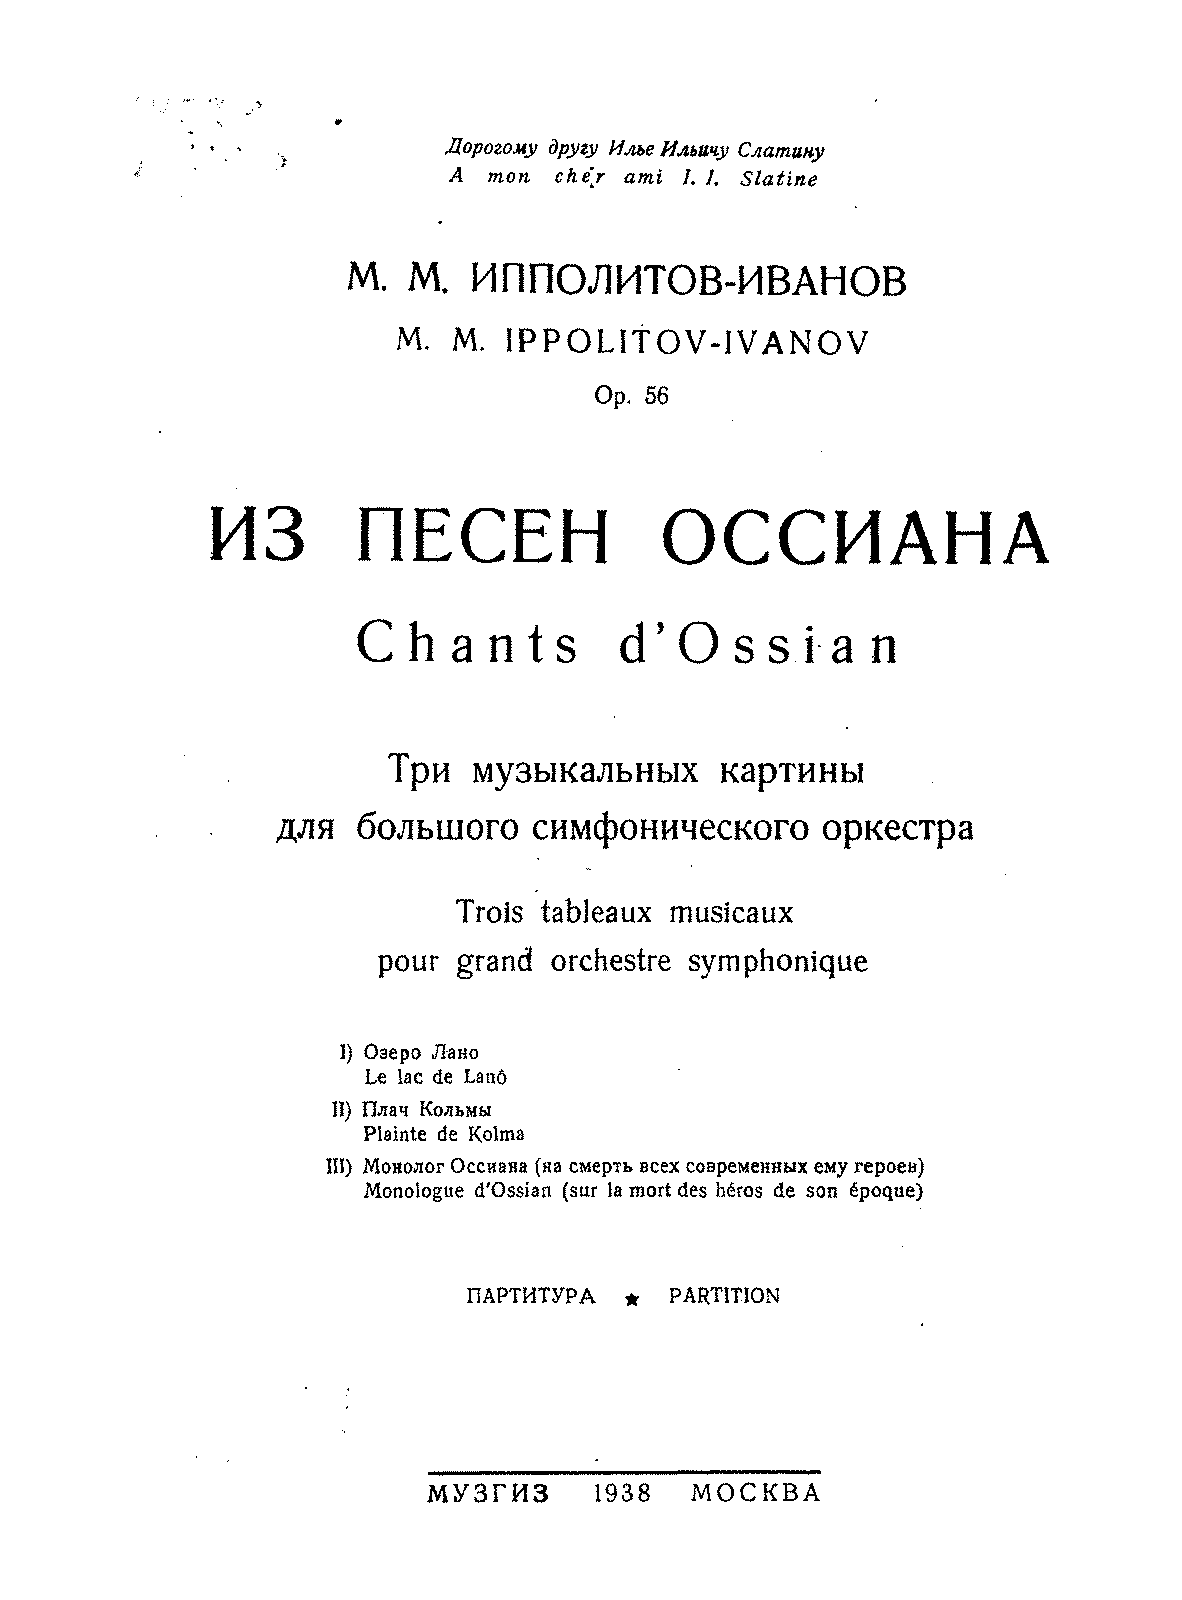 PMLP469540-MIppolitov-Ivanov From the Songs of Ossian, Op.56 fs.pdf